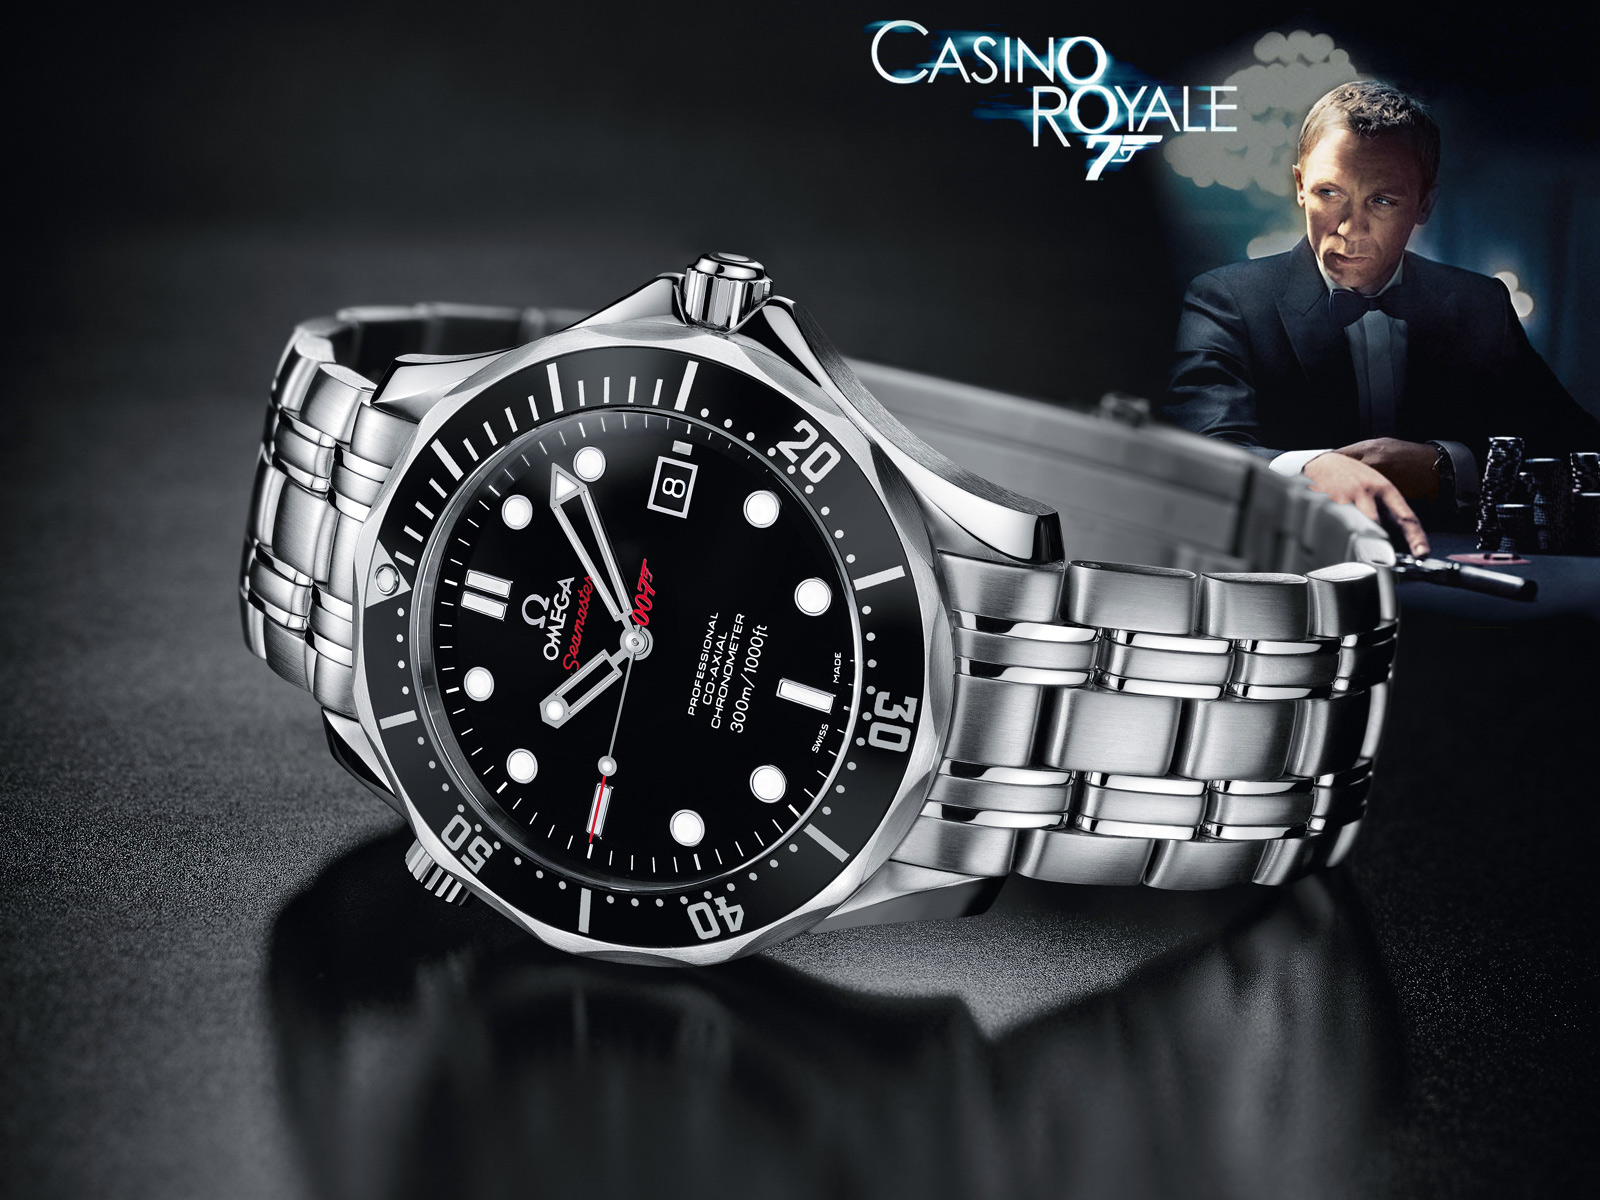 the james bond 007 50th anniversary omega seamaster co axial 300m swiss sports watch. Black Bedroom Furniture Sets. Home Design Ideas